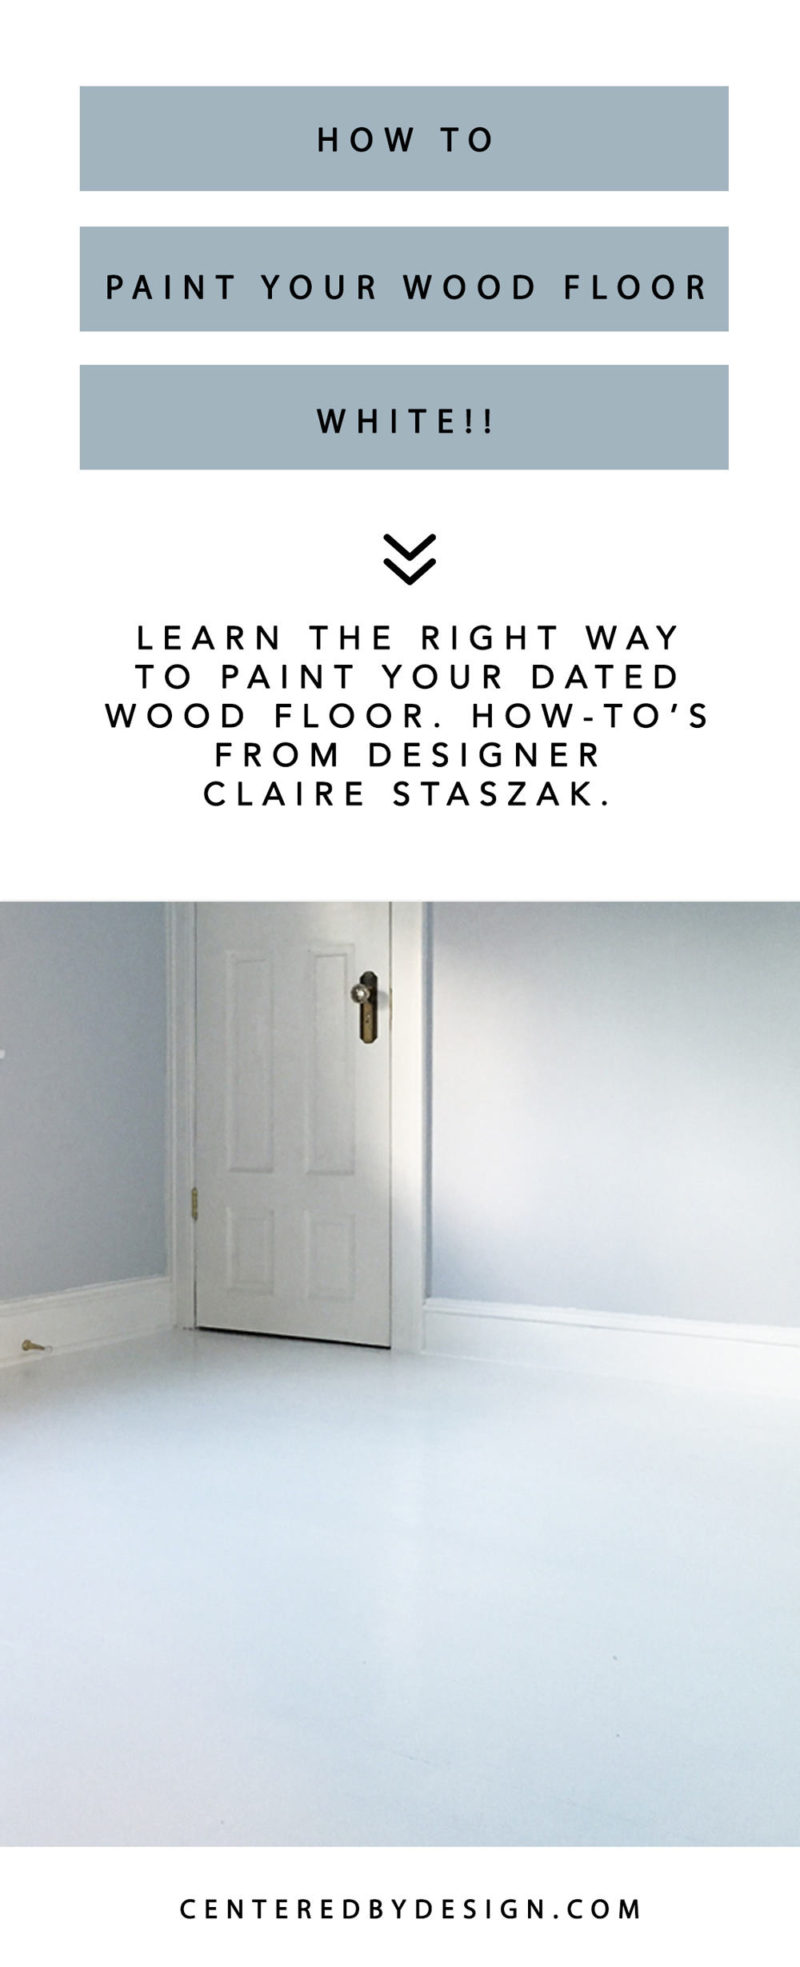 HOW-TO-PAINT-WOOD-FLOOR-WHITE